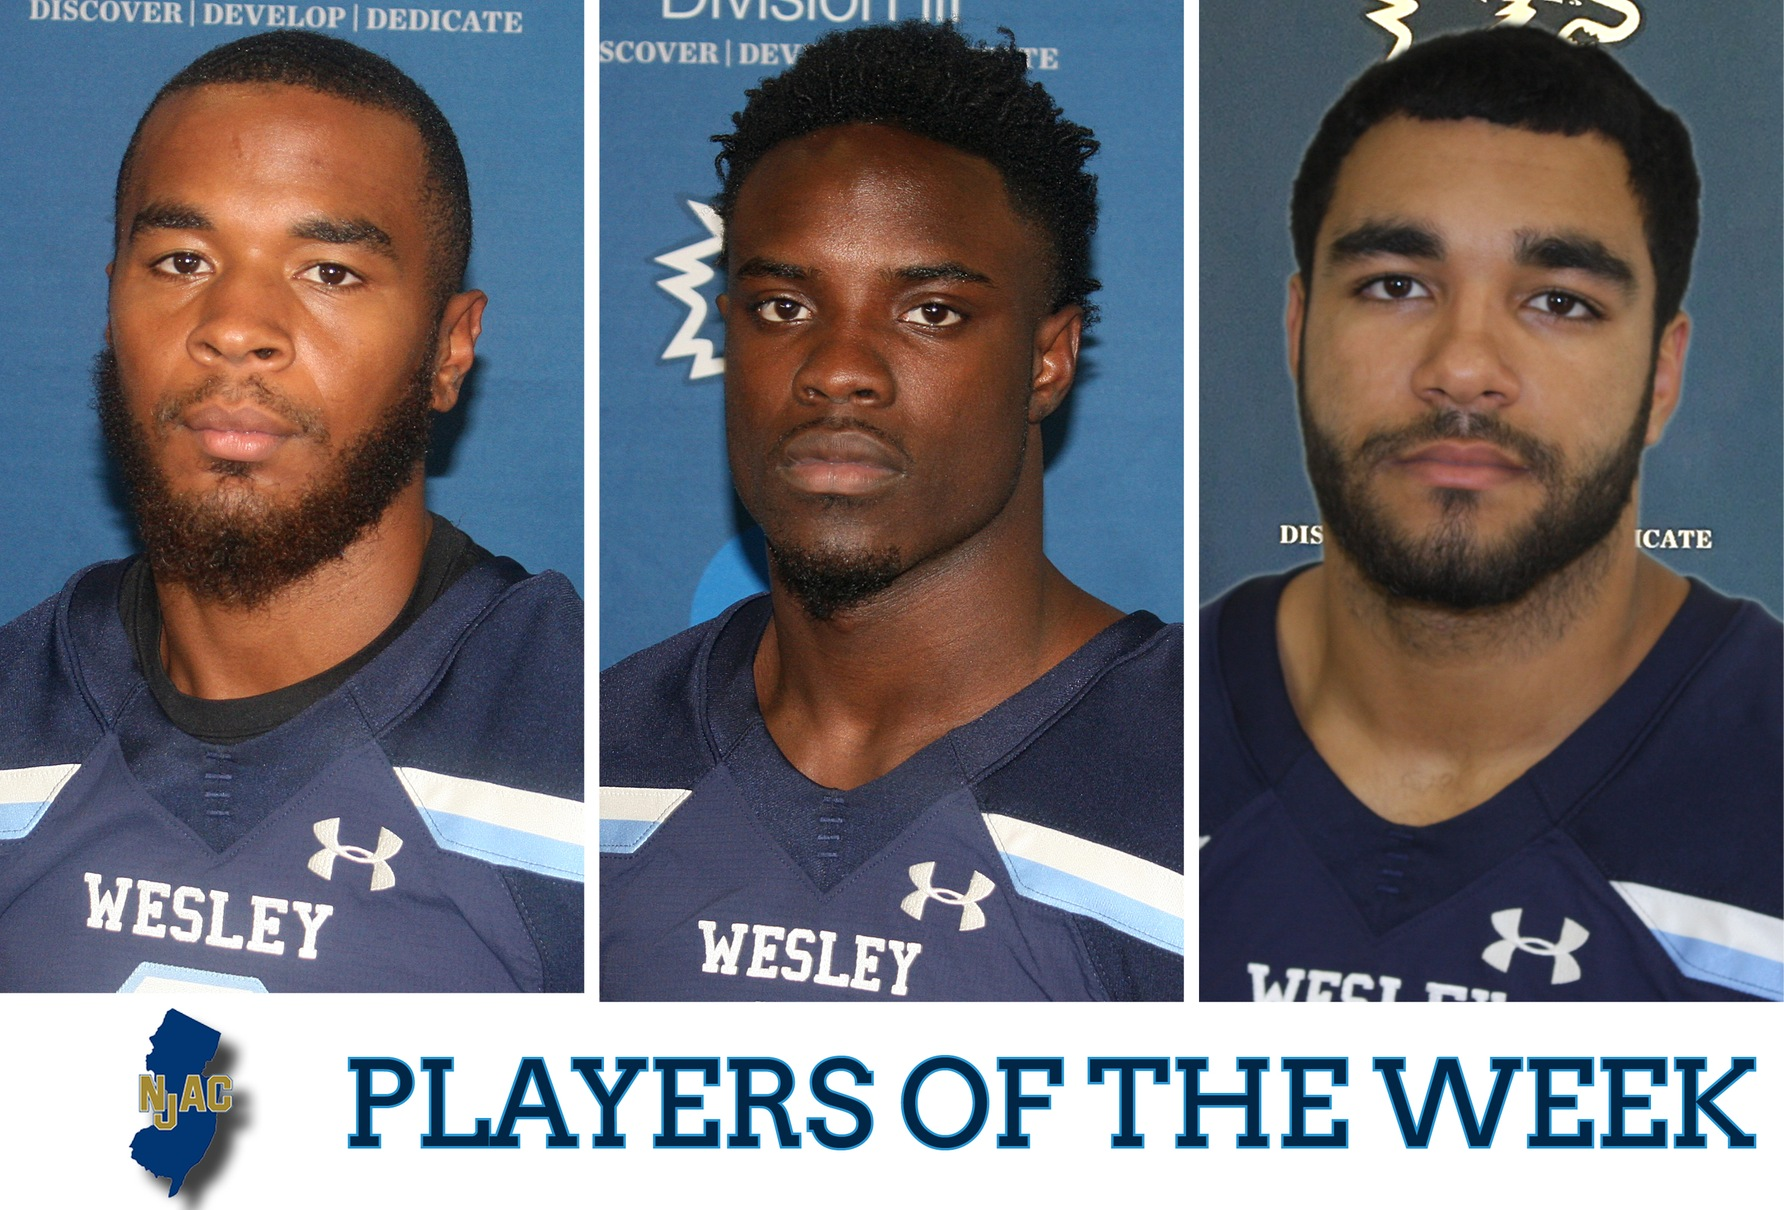 Three Wolverines pick up NJAC Player of the Week honors